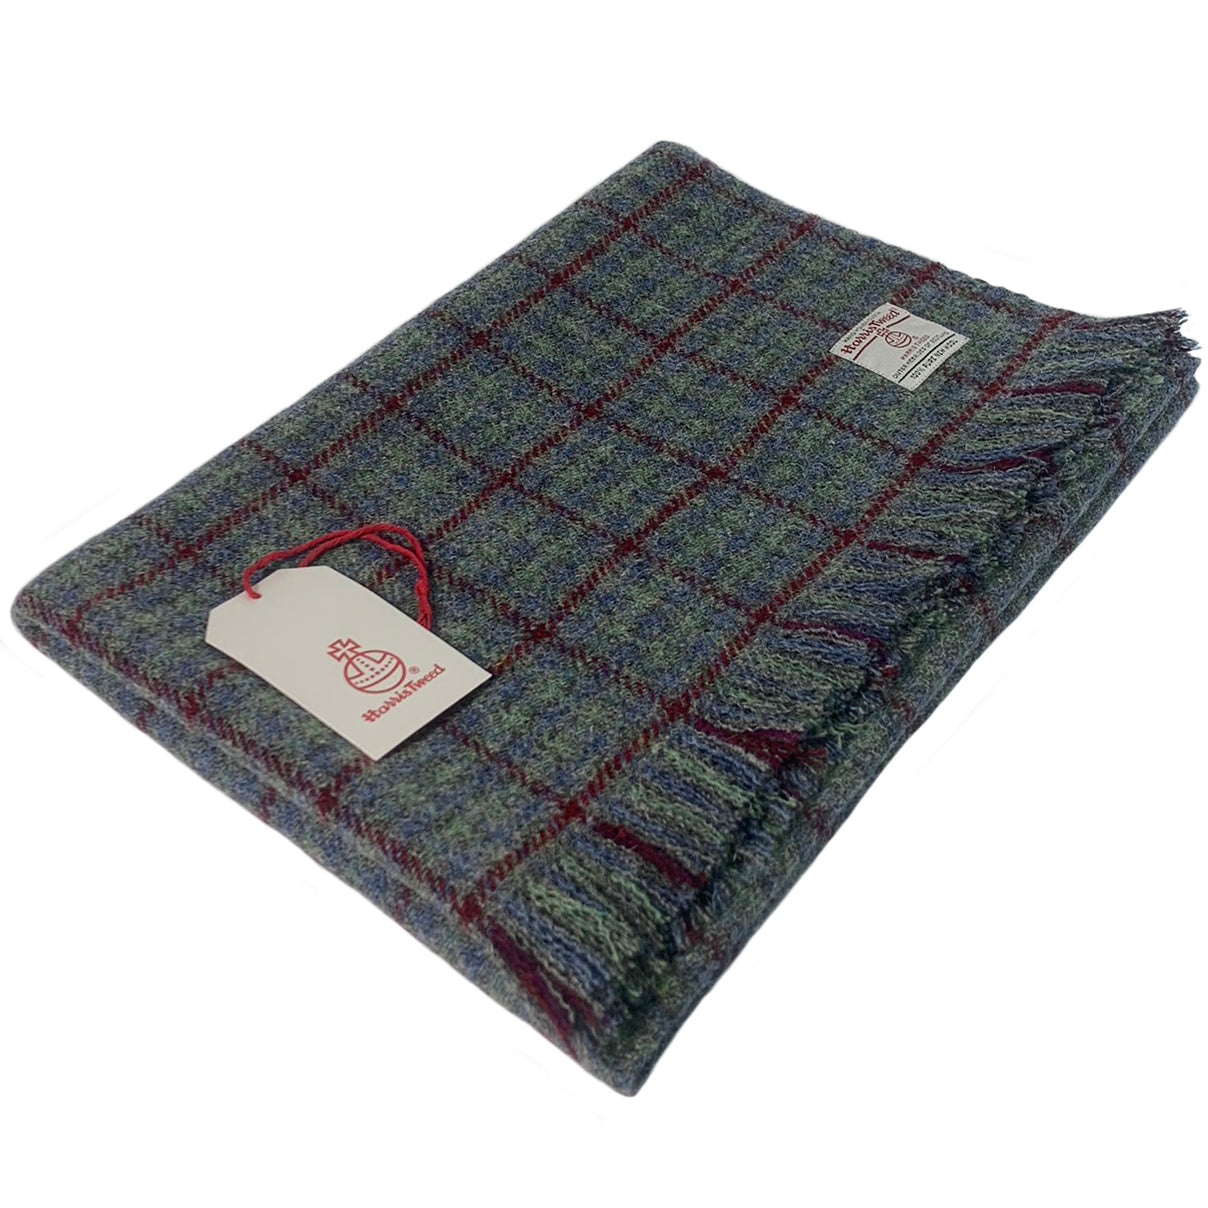 Harris Tweed Grey, Green & Blue with Wine Overcheck Lap Blanket